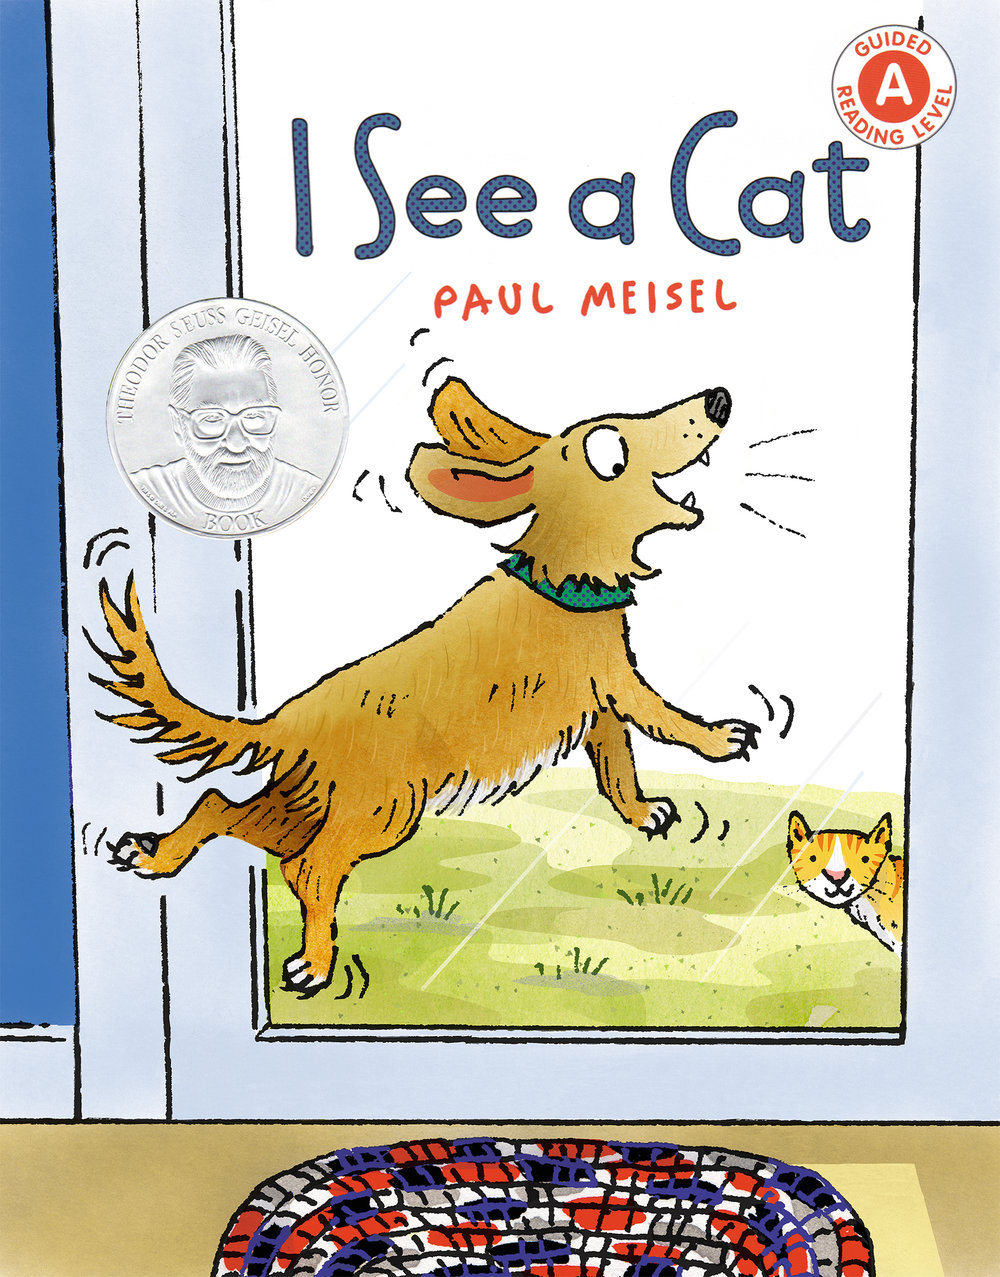 - So delighted that I See A Cat has received the Geisel Honor from ALA/Association for Library Service to Children!